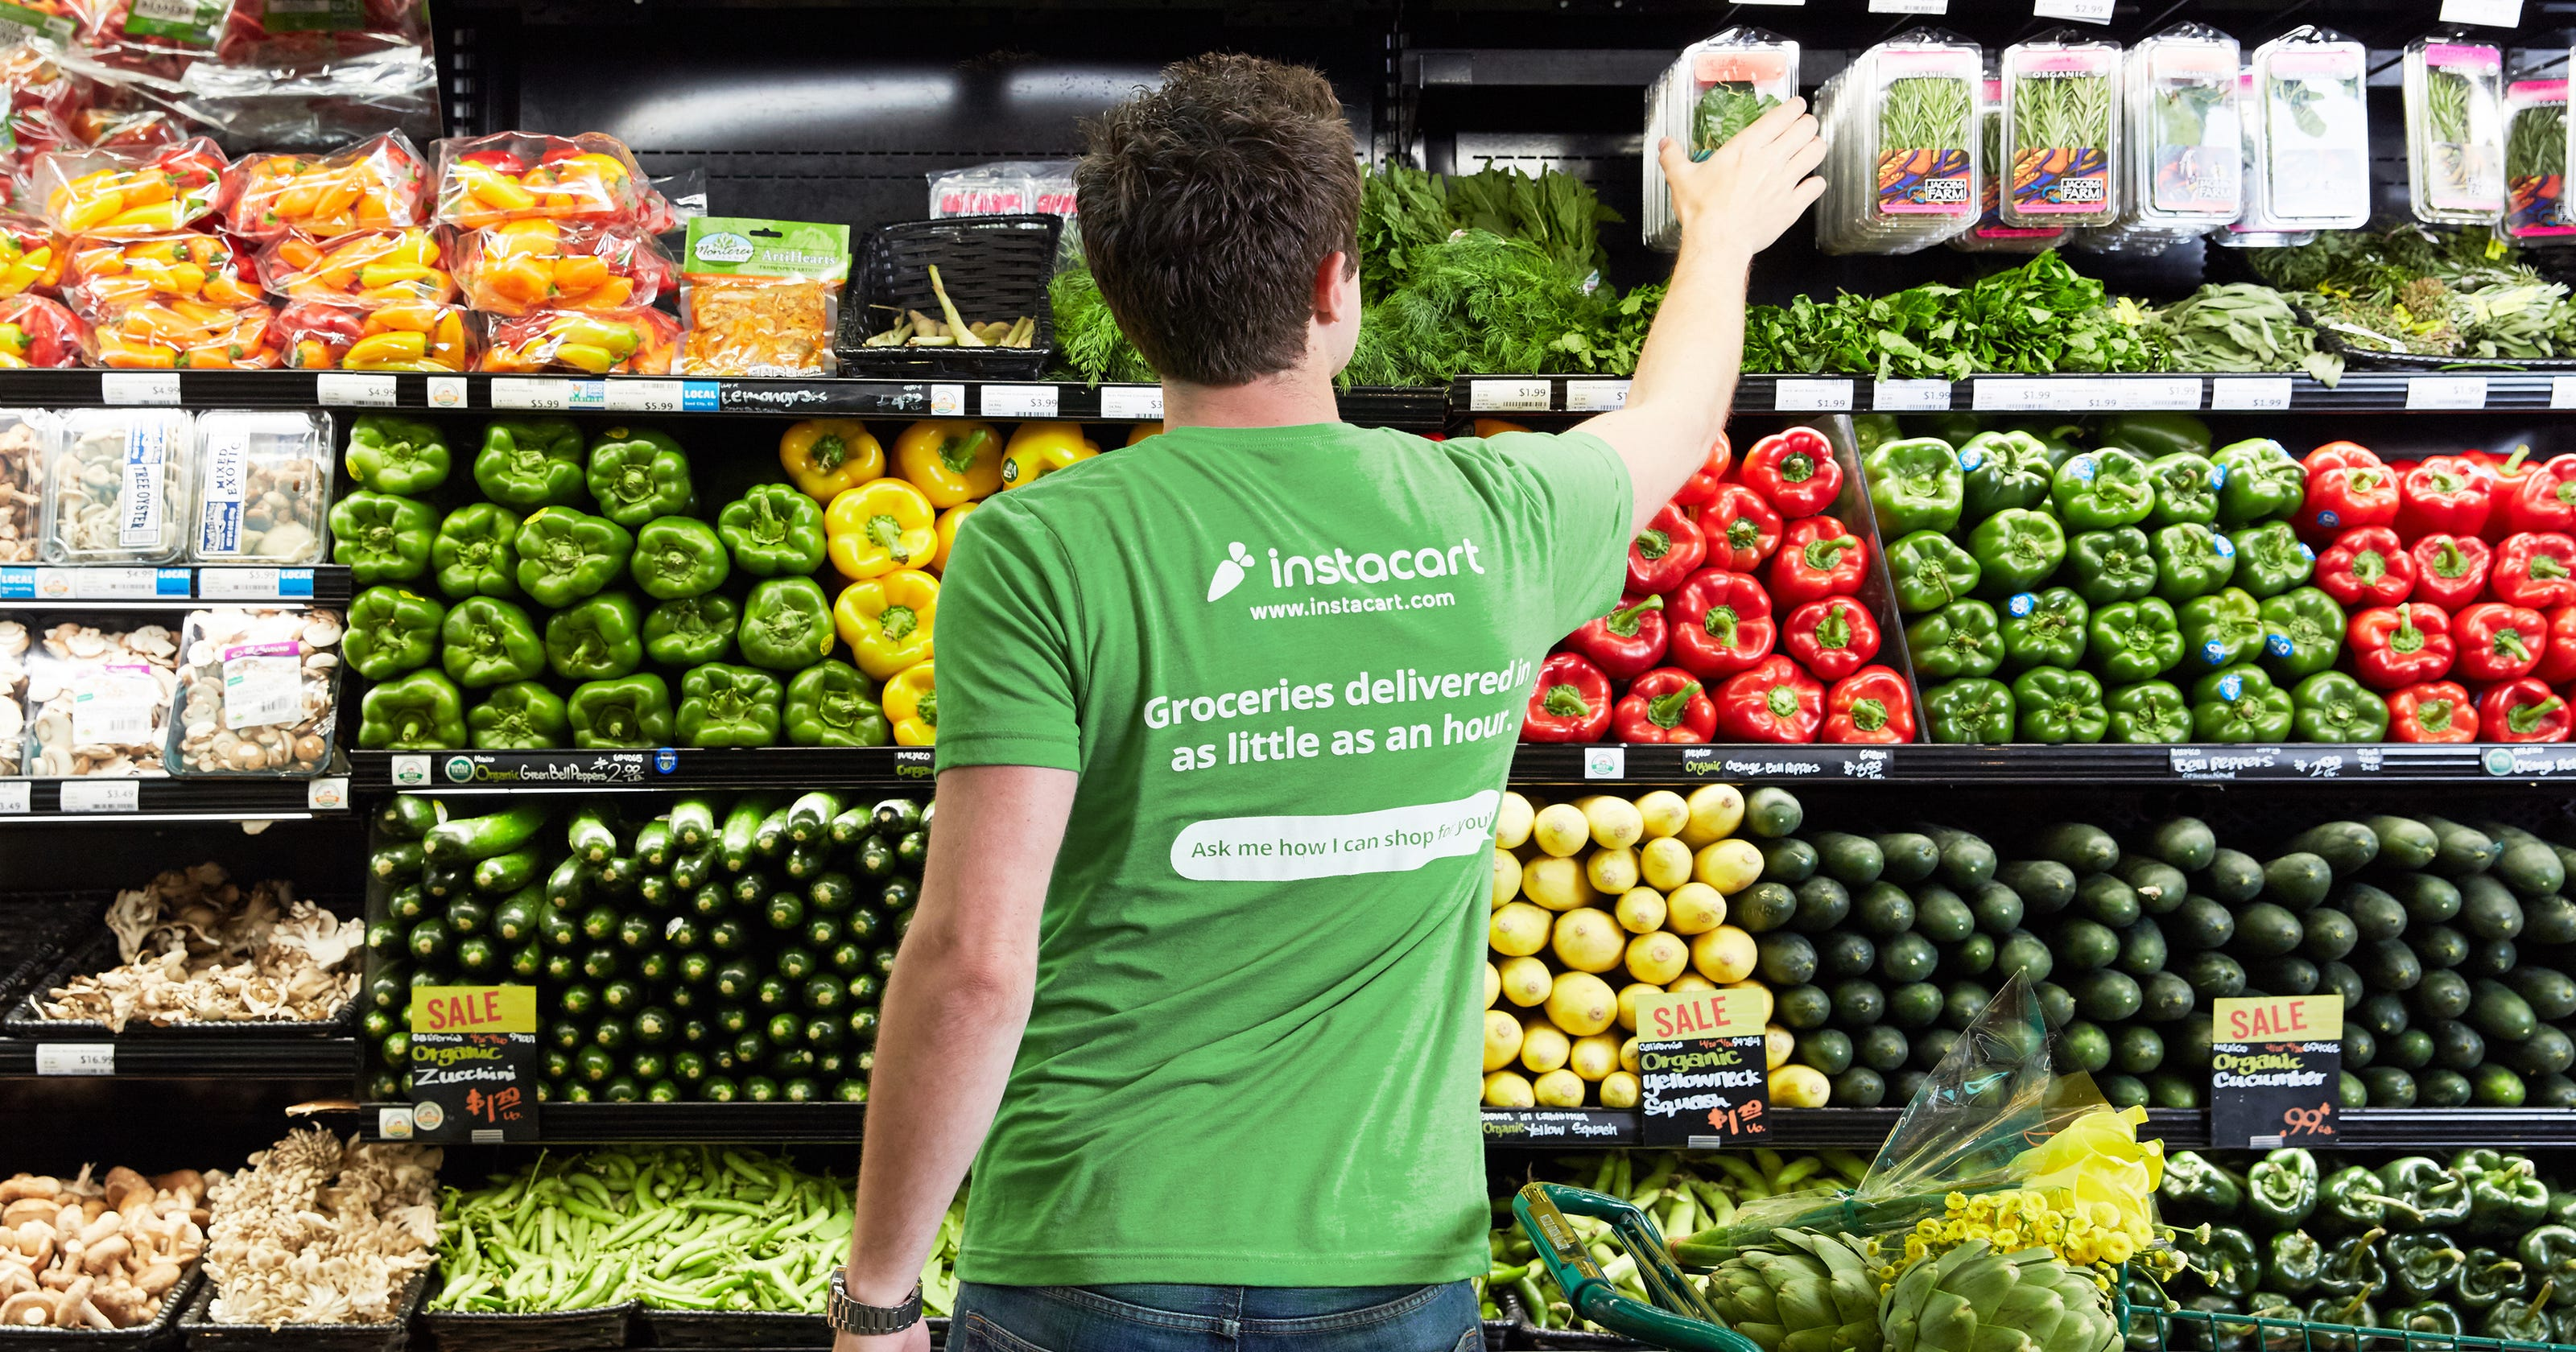 Food City joins Instacart delivery as Kroger expands